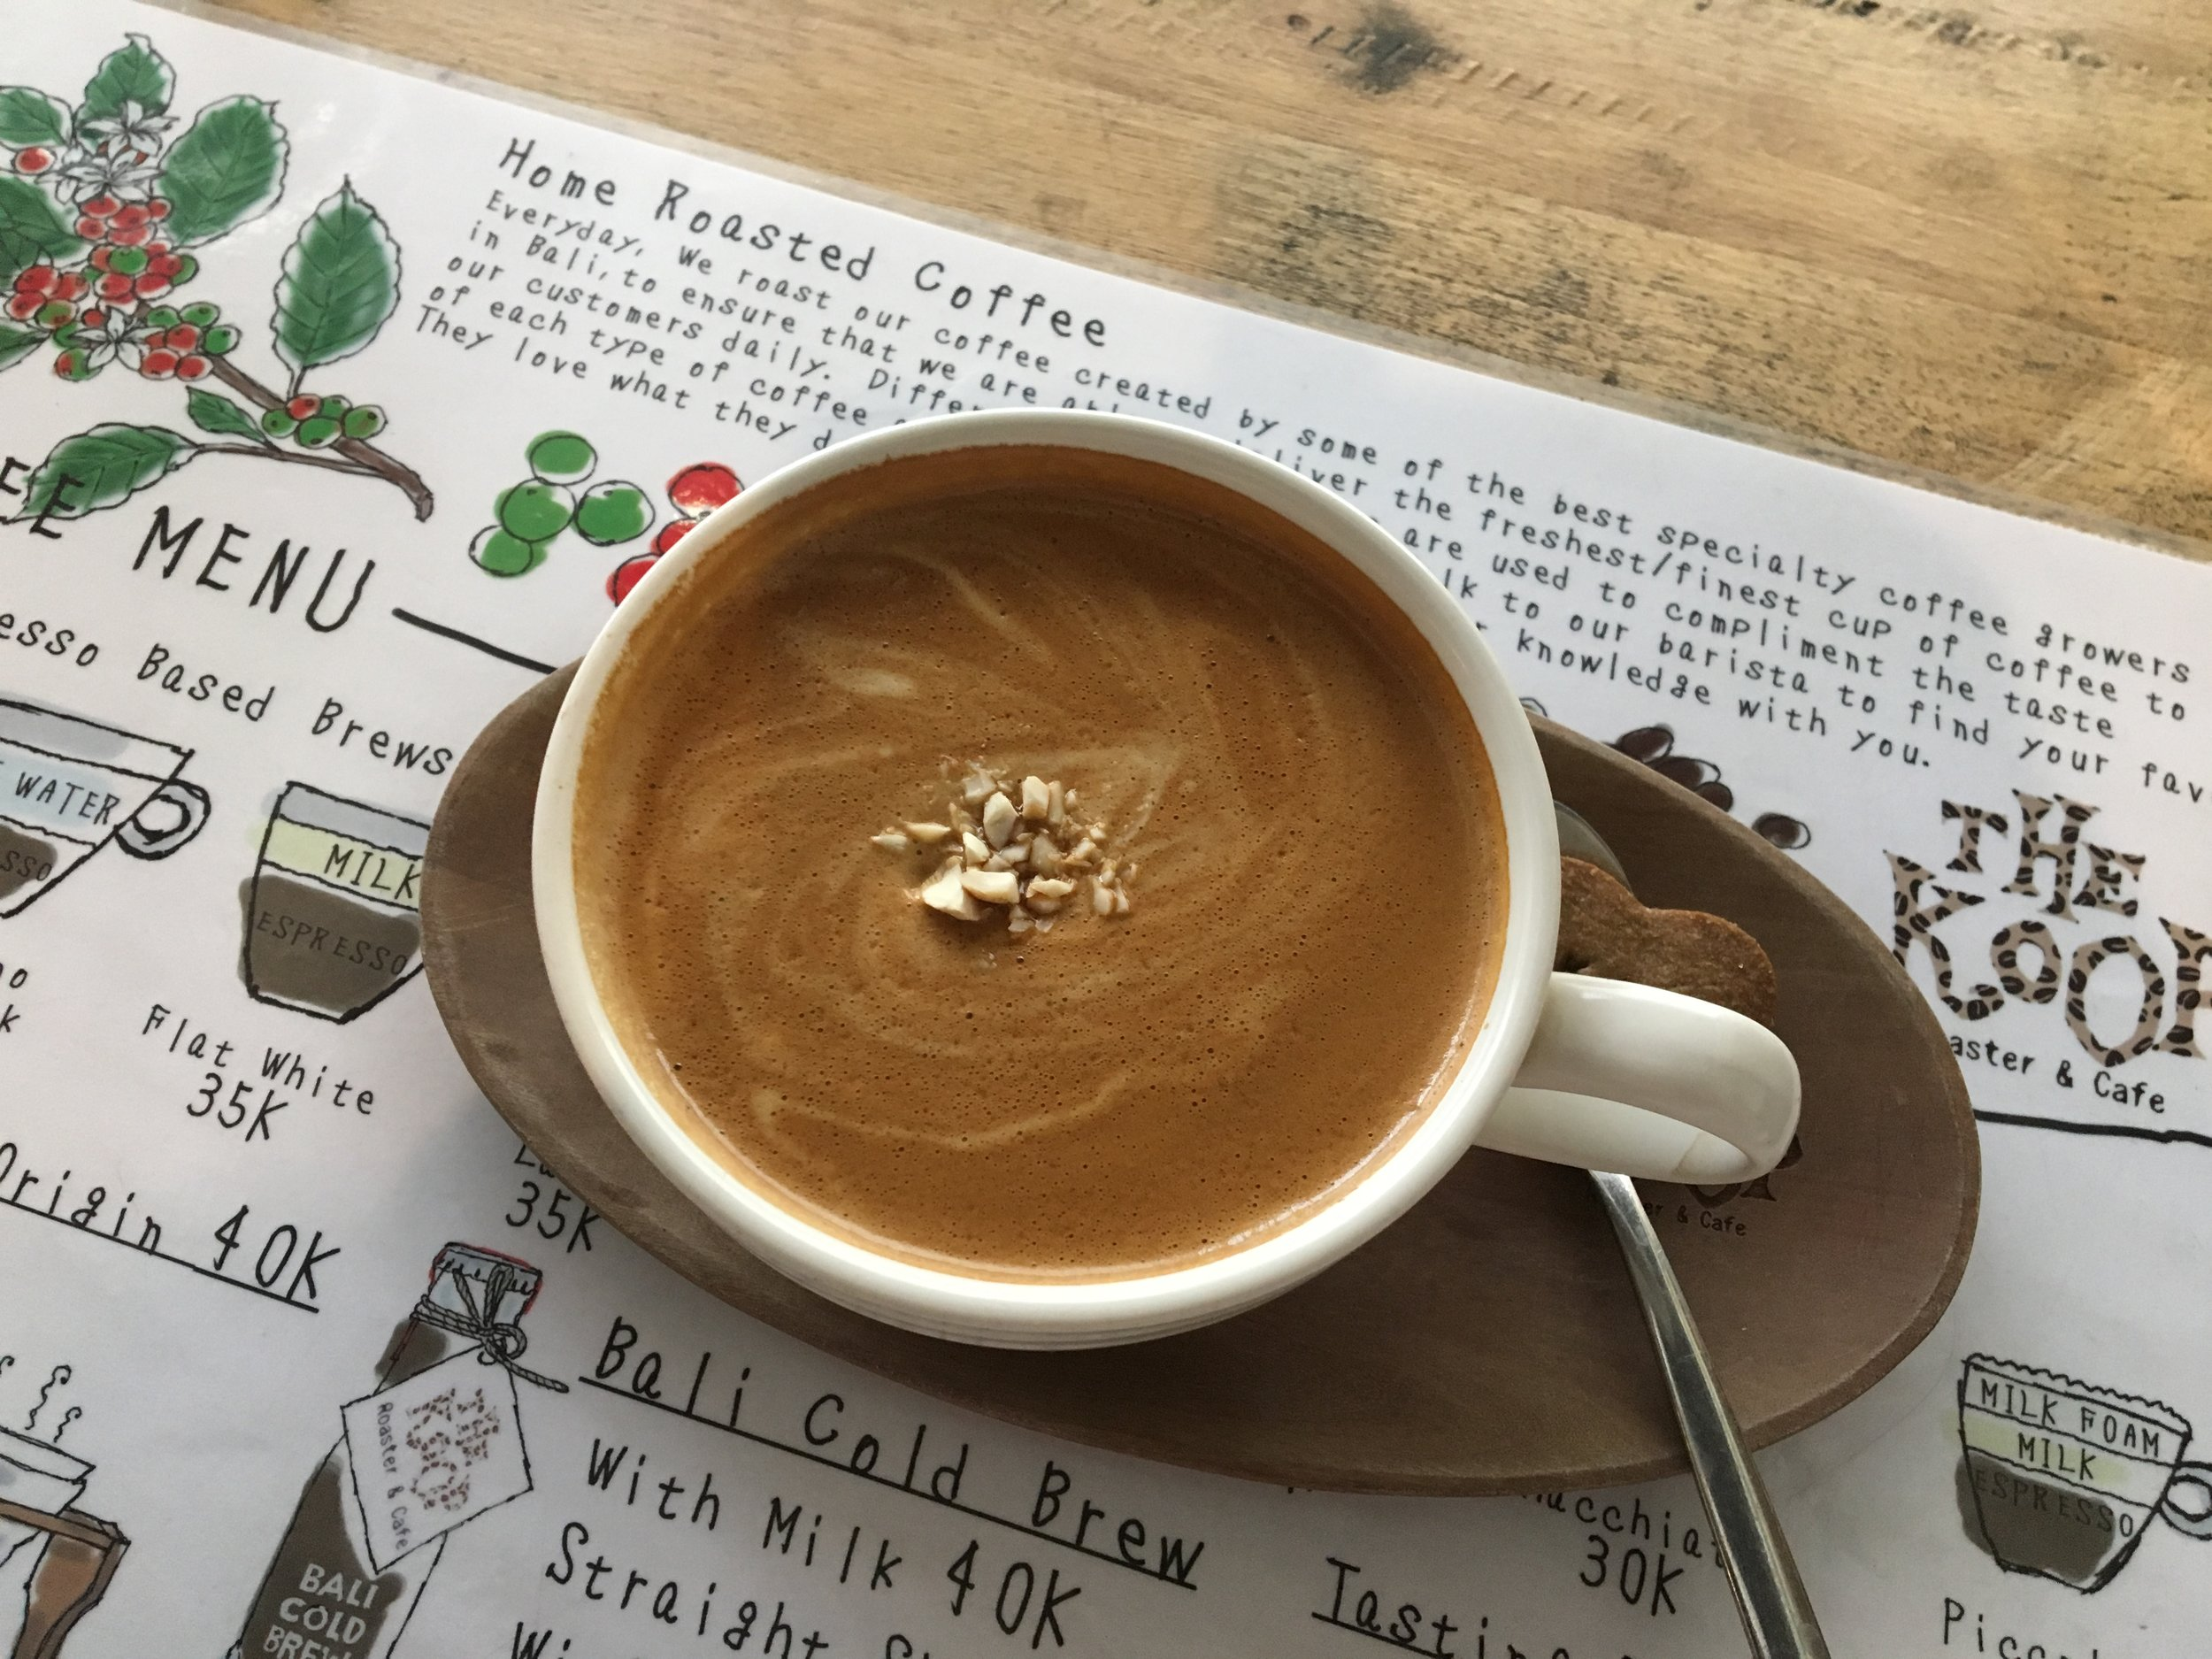 A coffee I enjoyed in Bali last week.